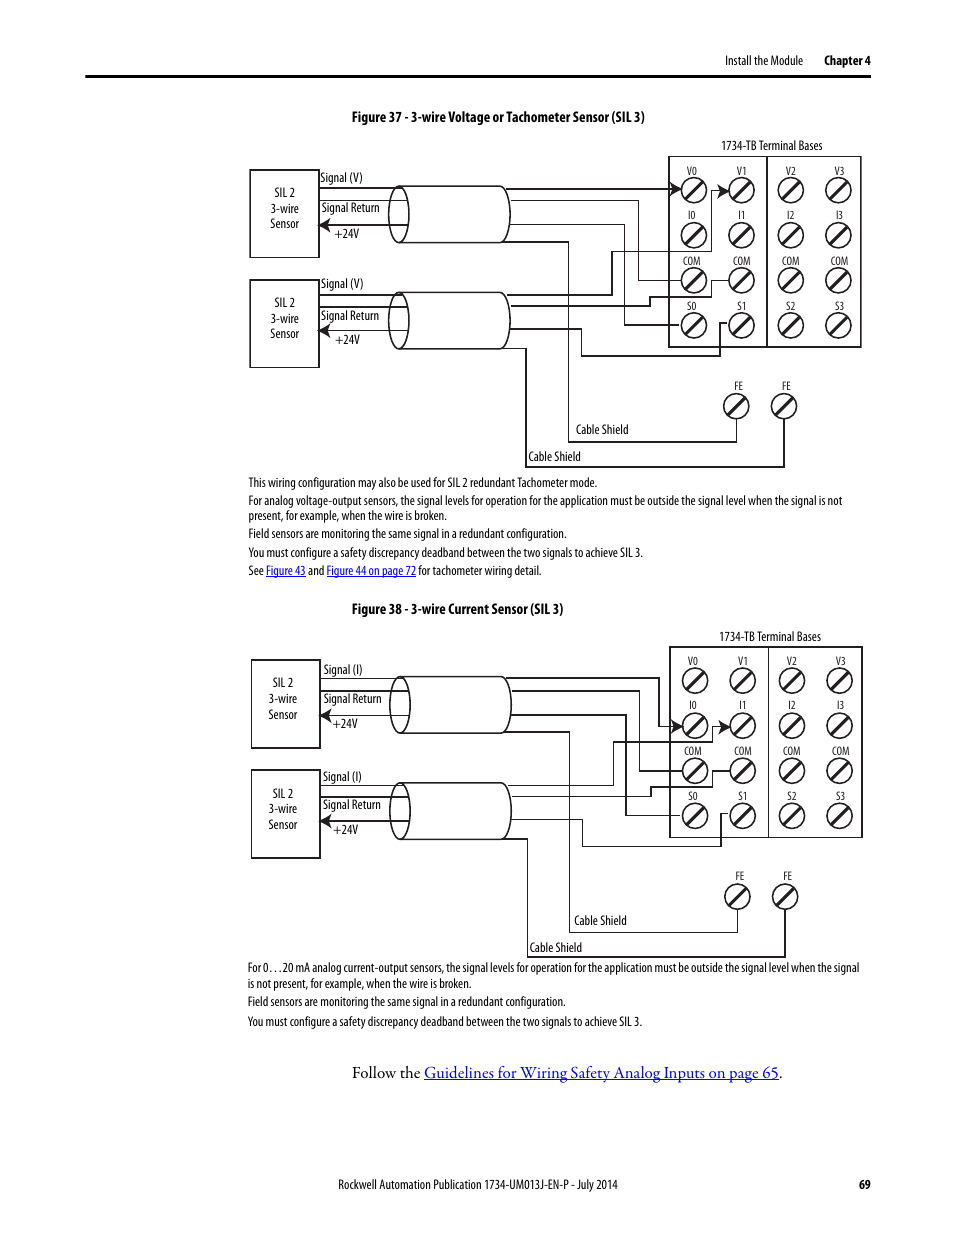 I O Wiring Diagrams : Ib s wiring diagram color coding